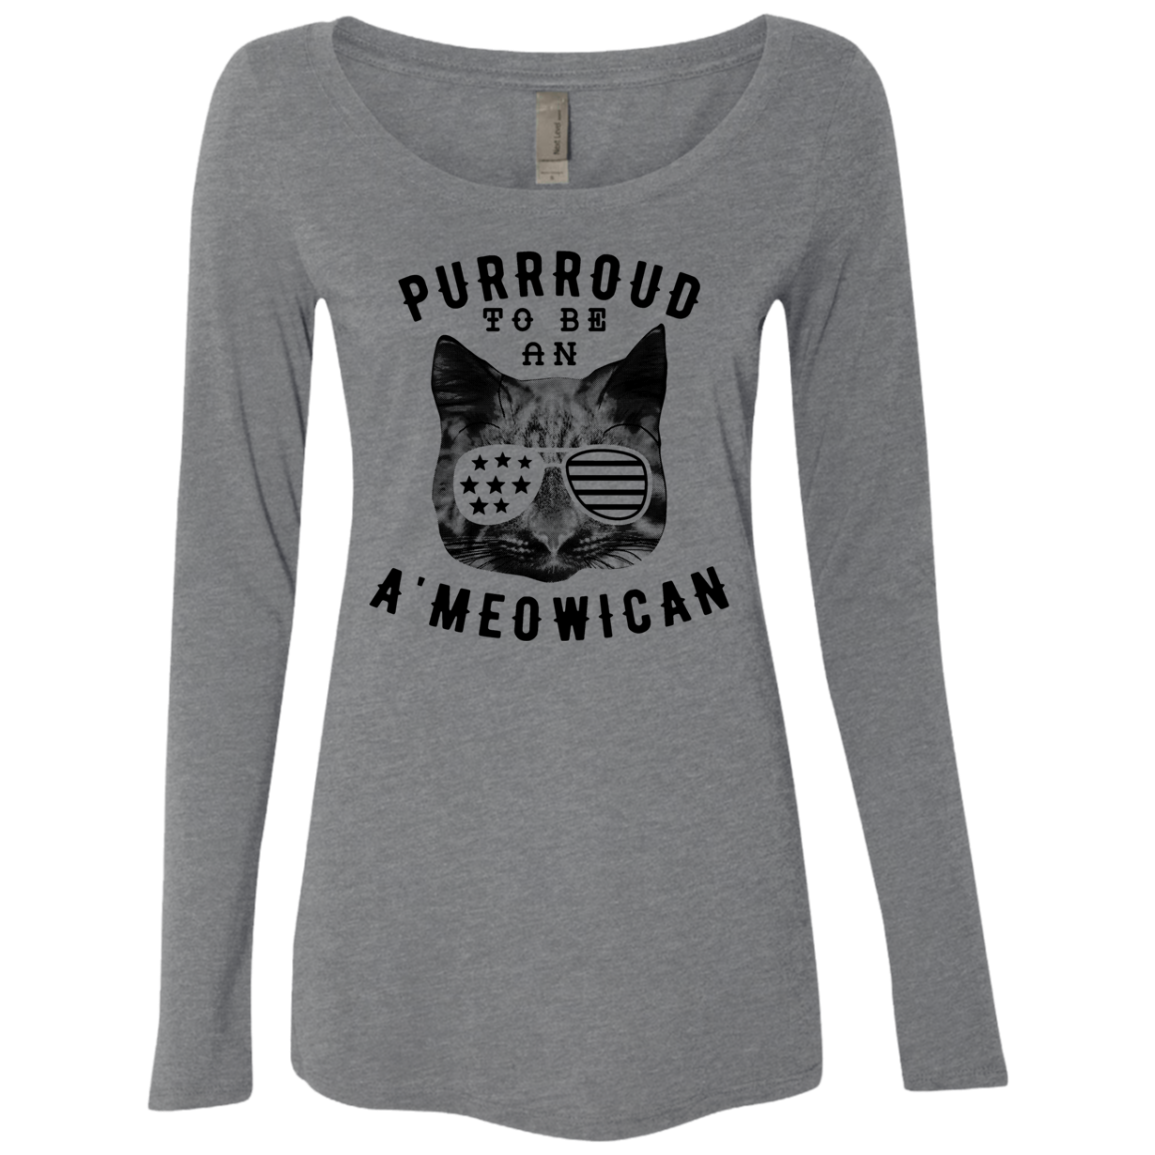 Purrroud To be An American Women's Long Sleeve Tee